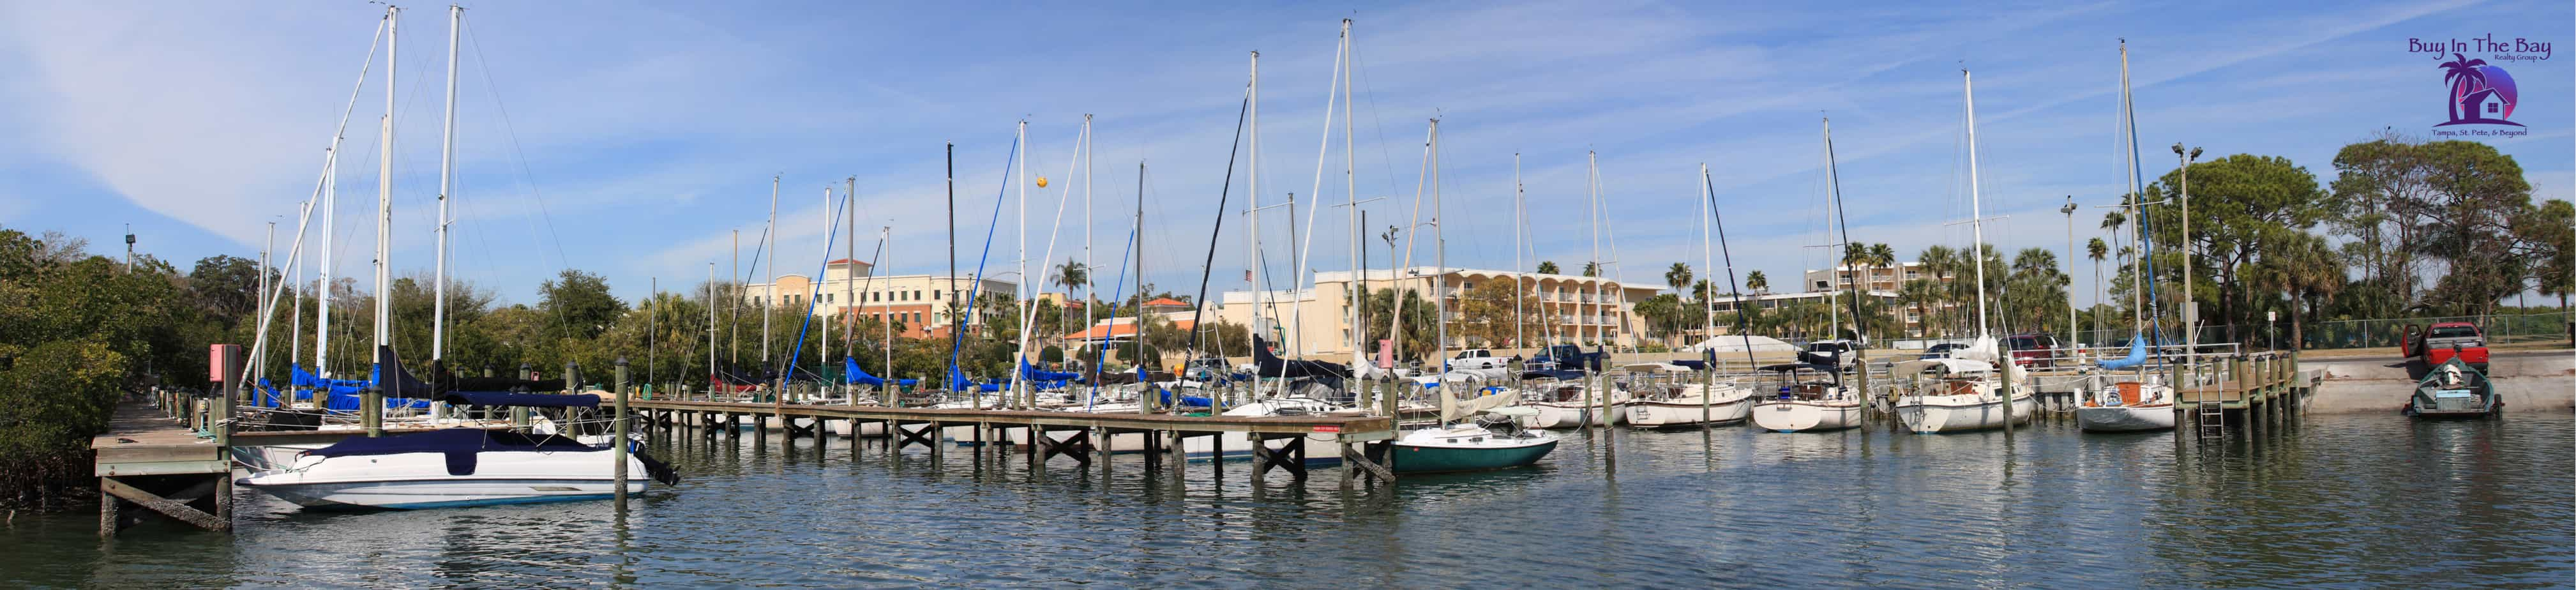 Safety Harbor Florida Marina with boats on water and palm trees